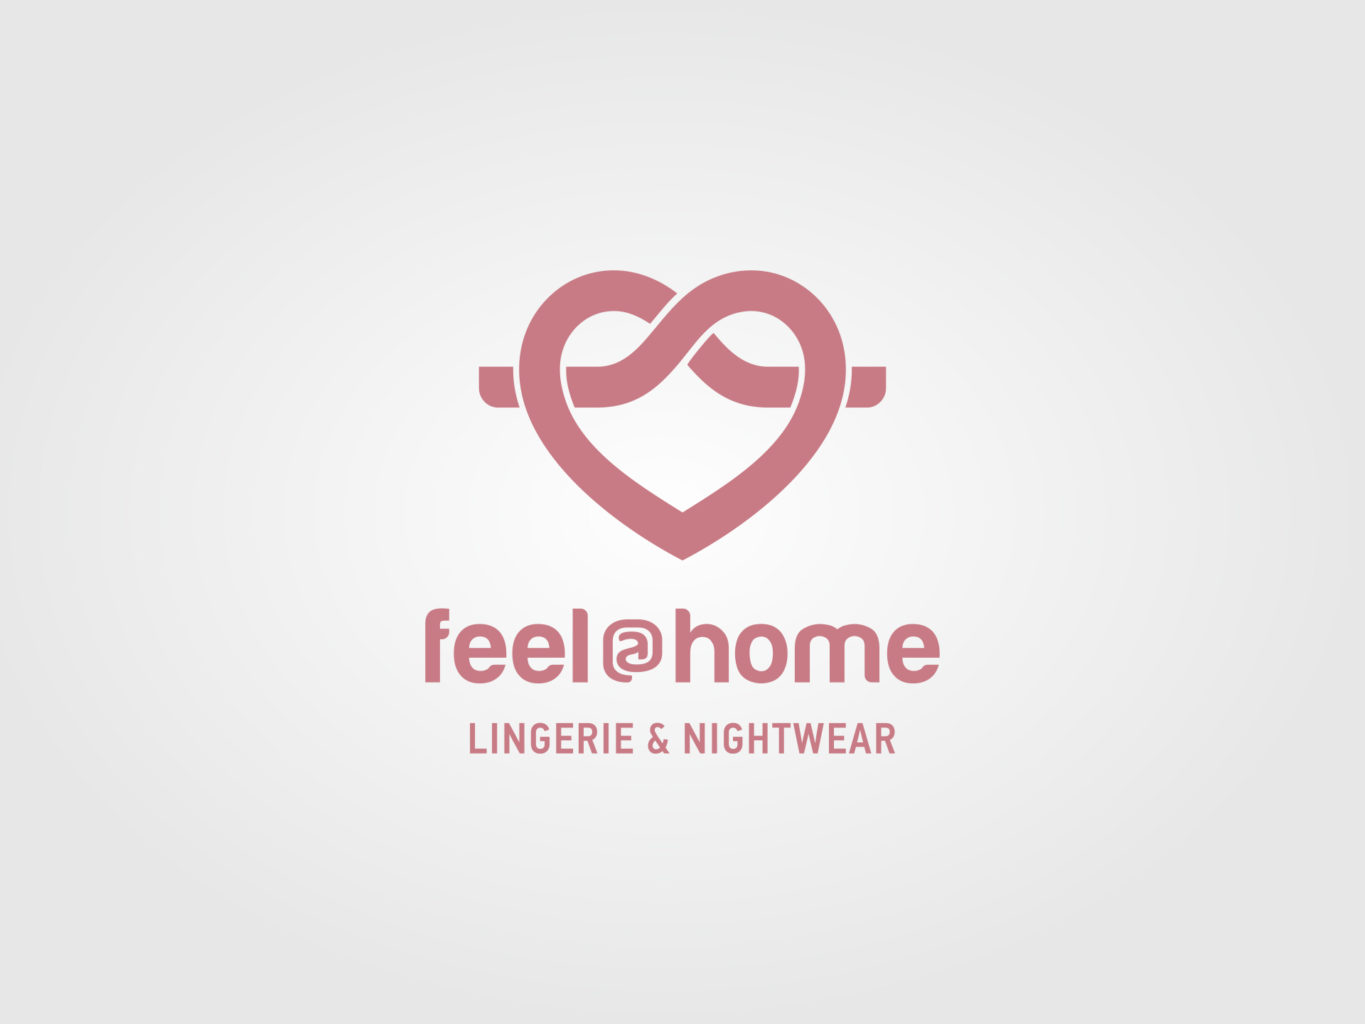 feel at home logo by fiftyeggz